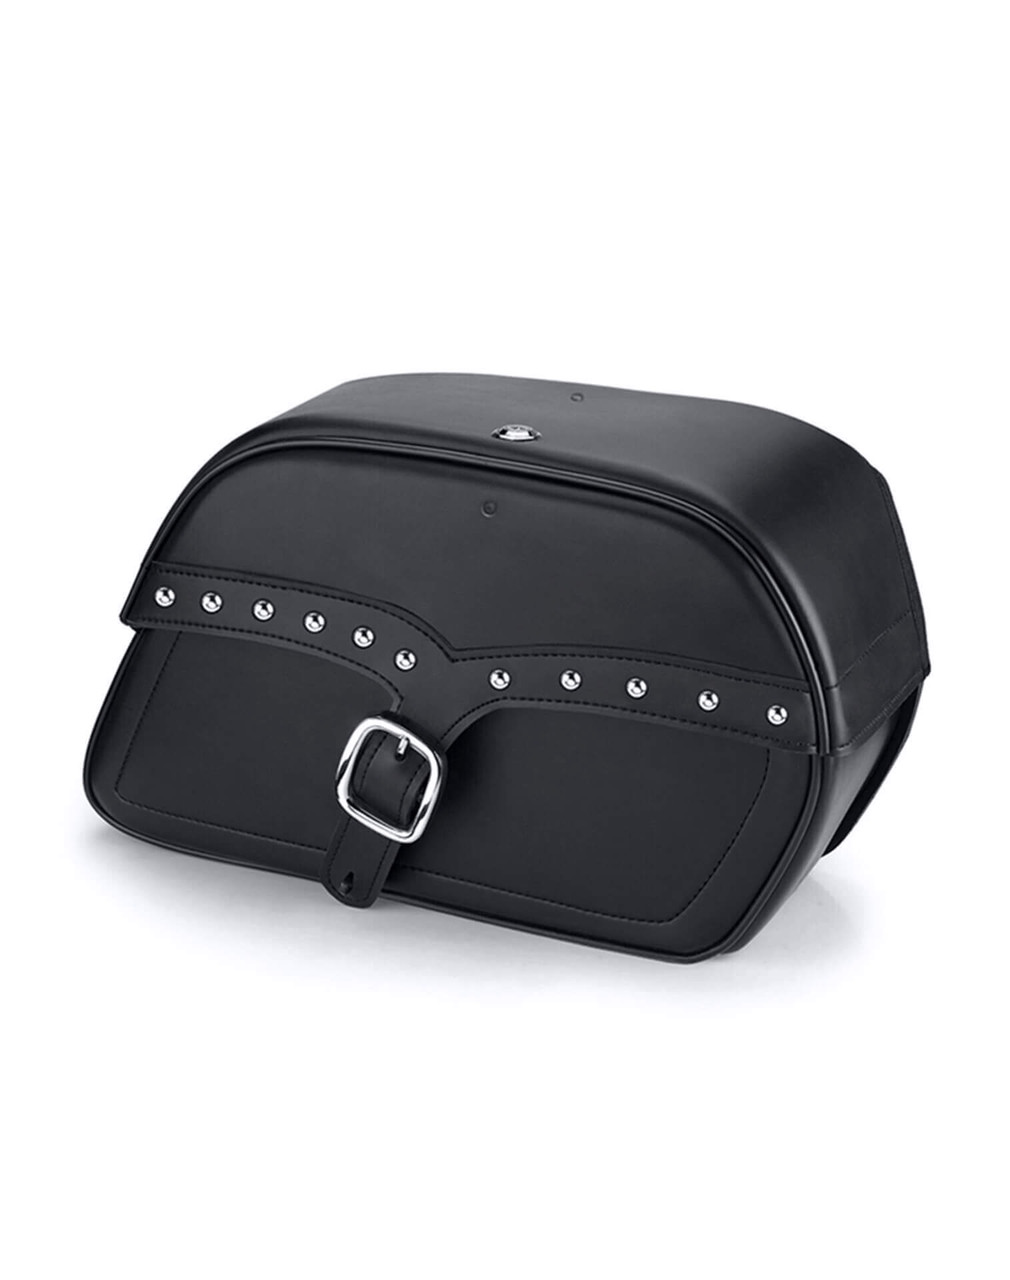 Triumph Rocket III Roadster Charger Single Strap Studded Medium Motorcycle Saddlebags Main View